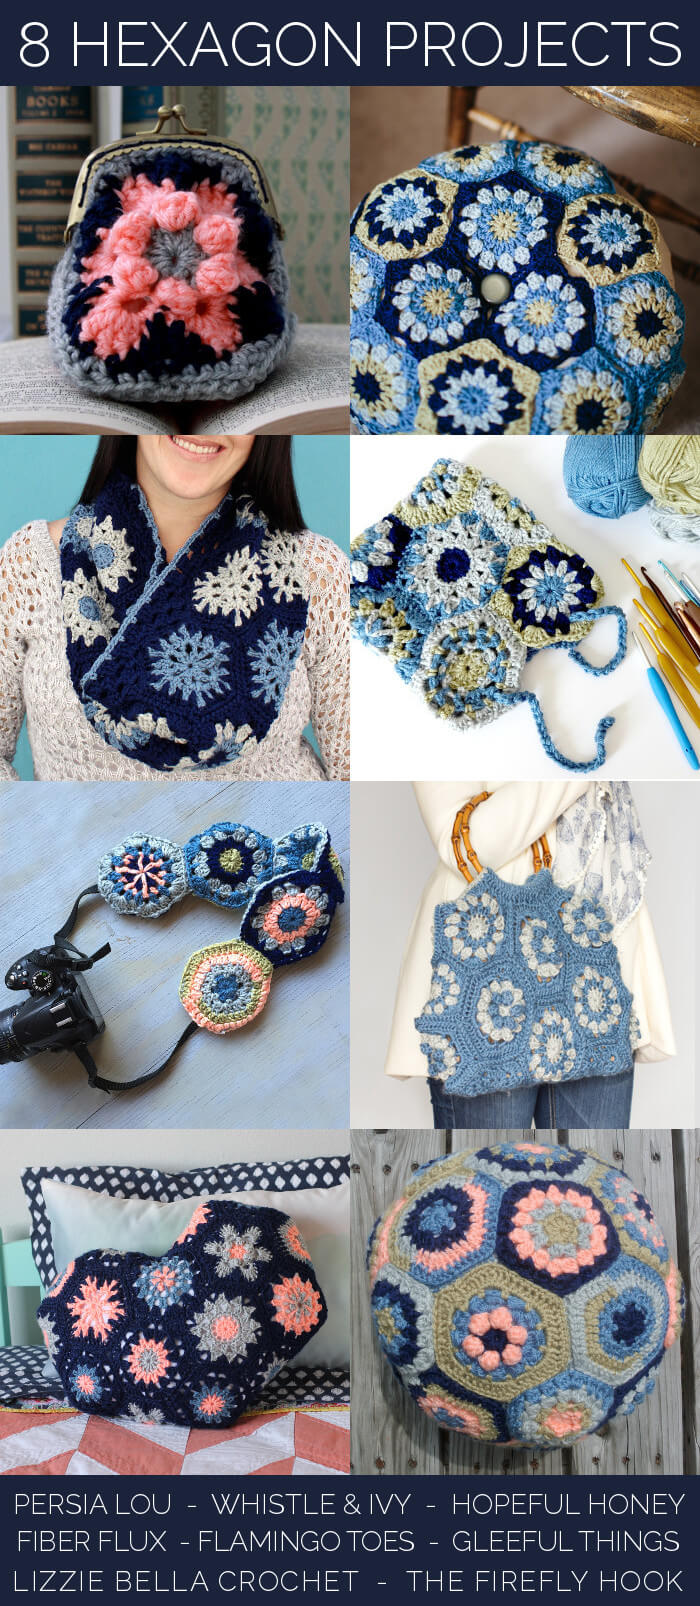 Eight projects to make with crocheted hexagons - lots of fun ideas!